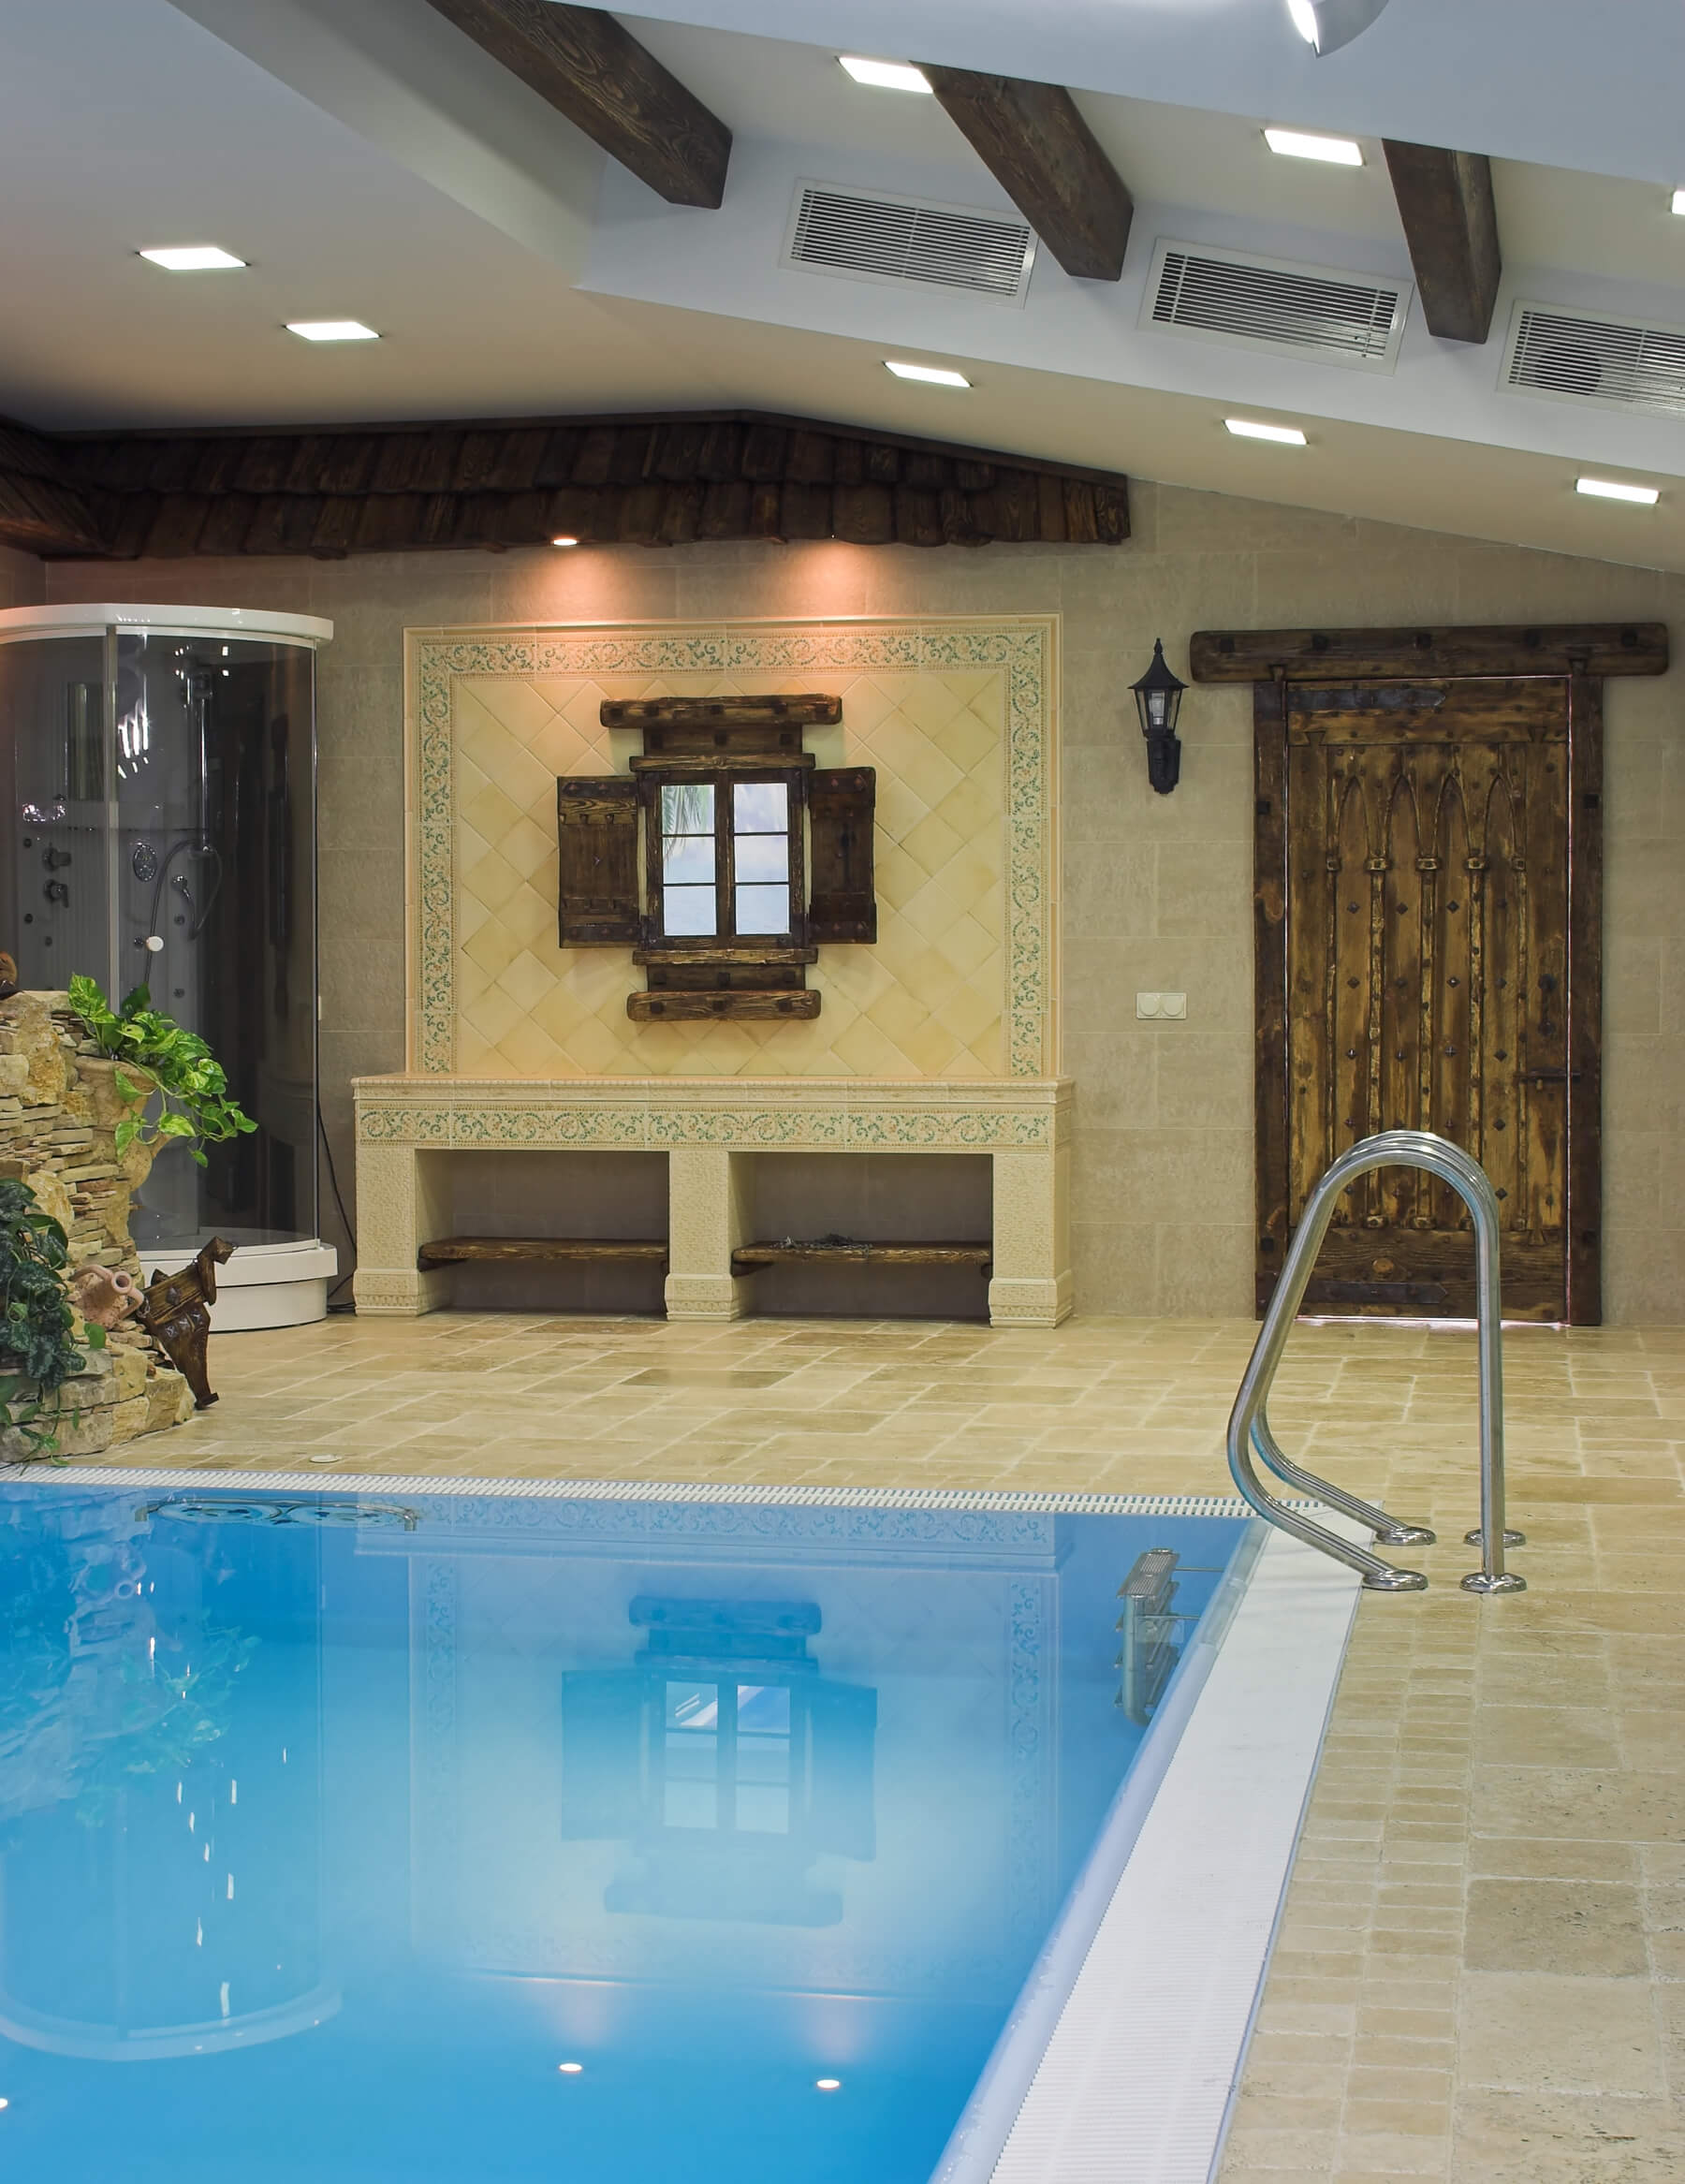 Partial view of pool room with round glass shower, wood door and tile work on the walls.